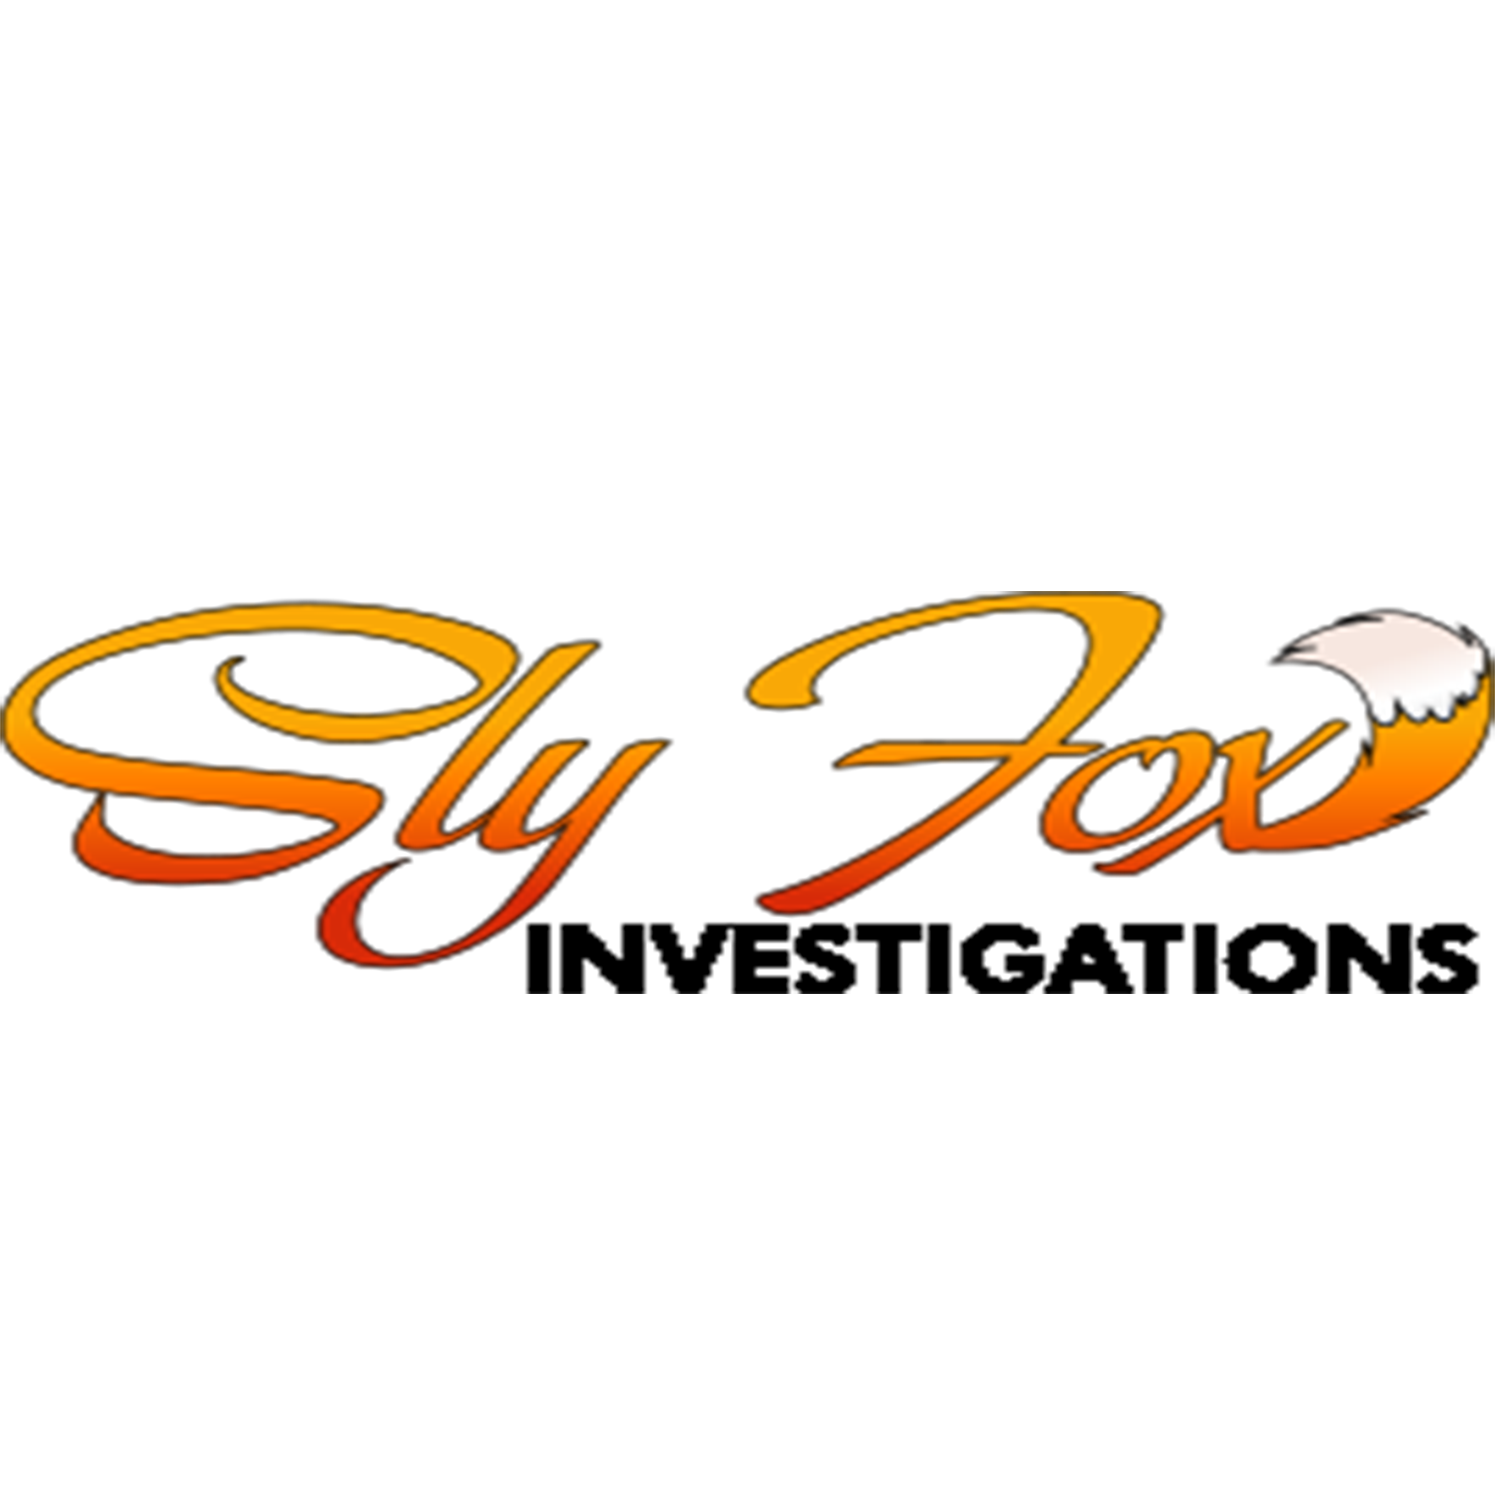 http://www.slyfoxinvestigations.com/